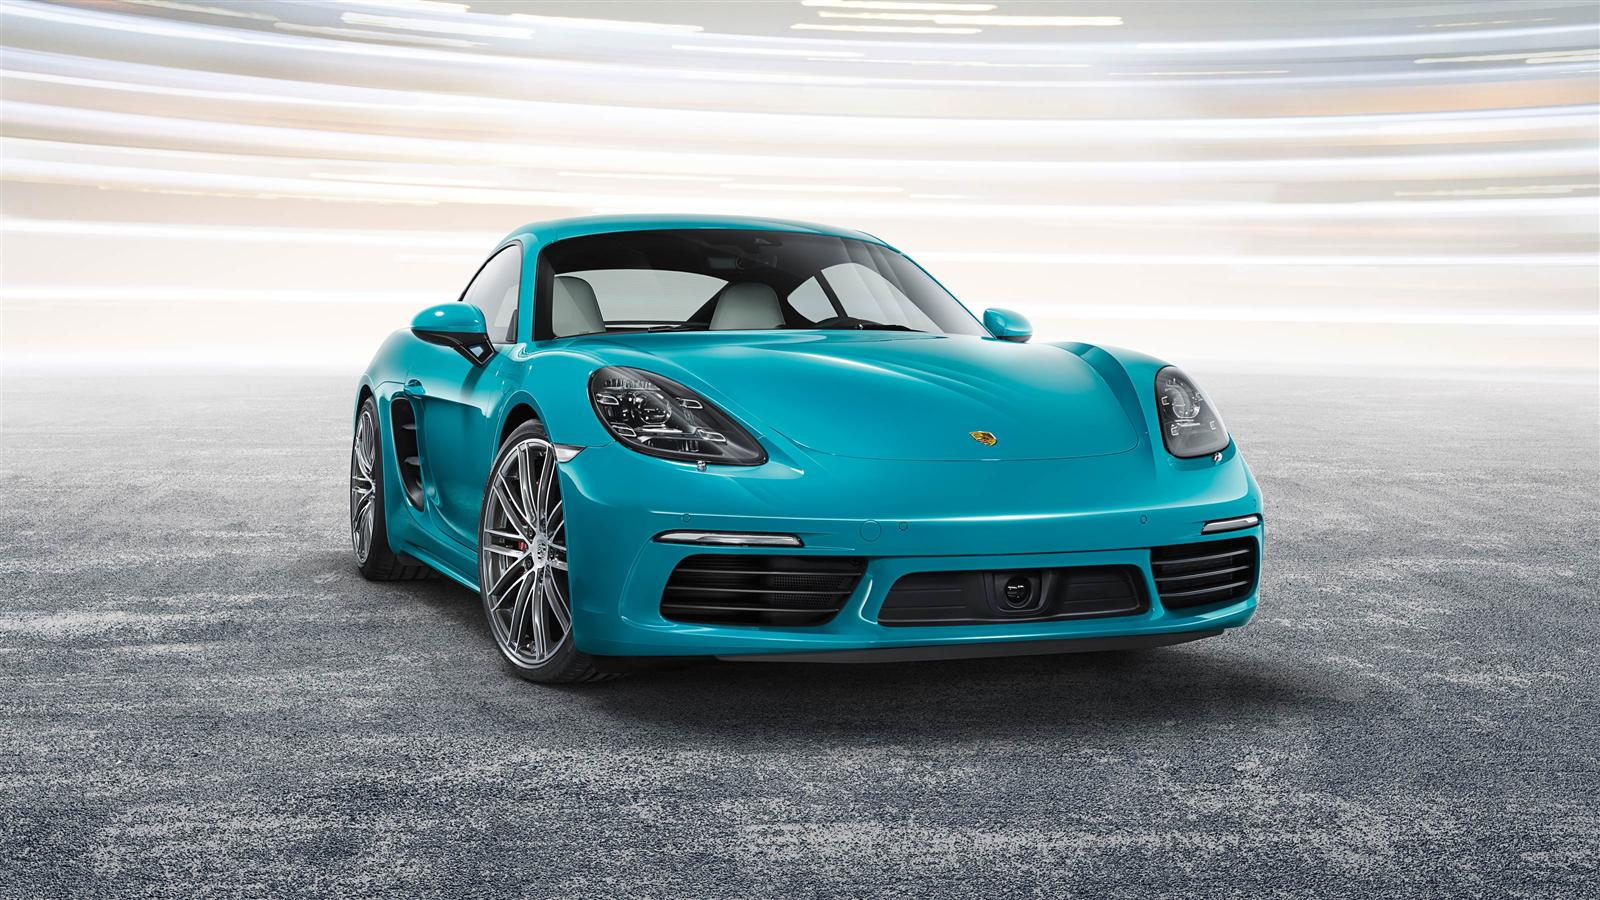 2017 porsche boxster 718 front view 10506 cars performance reviews and test drive. Black Bedroom Furniture Sets. Home Design Ideas